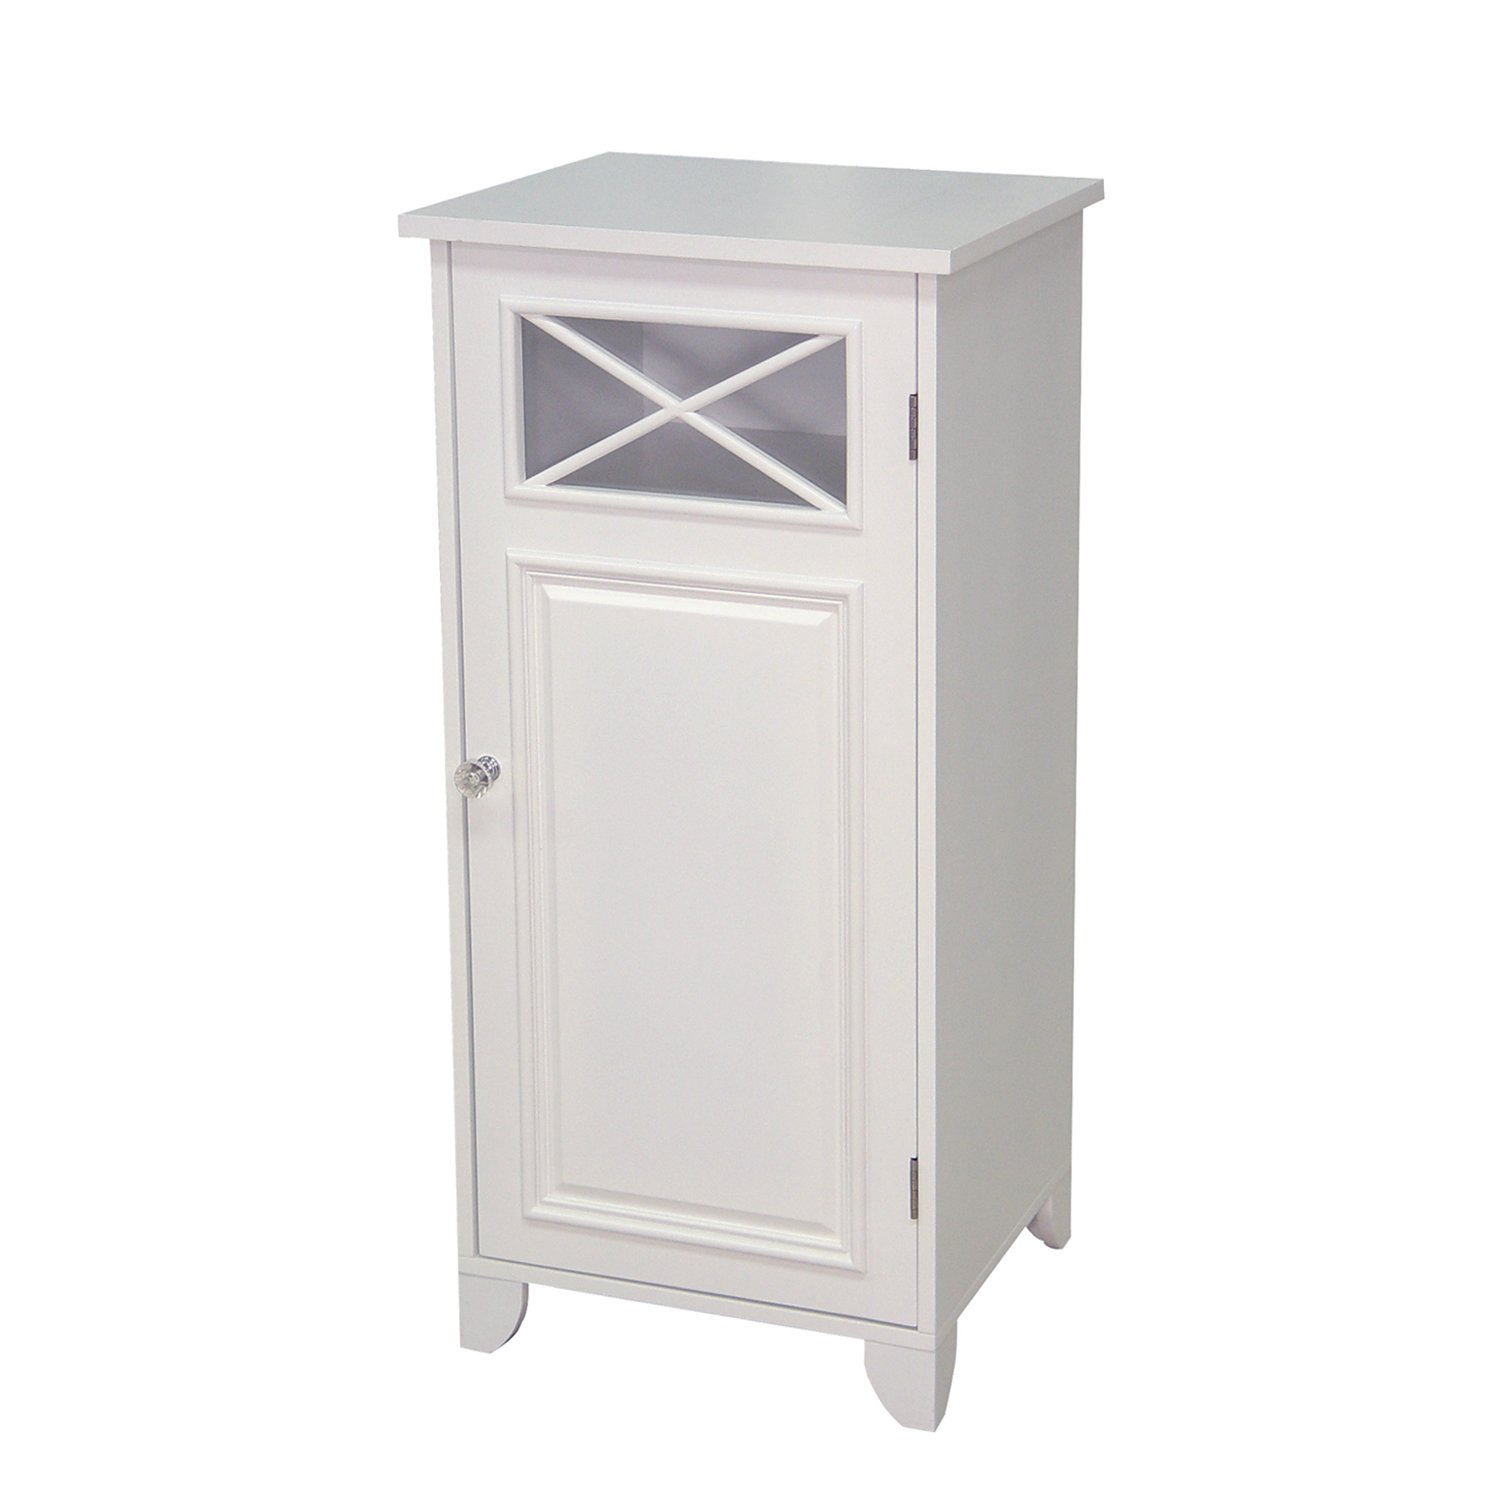 amazoncom elegant home fashions dawson floor cabinet with single door white kitchen dining